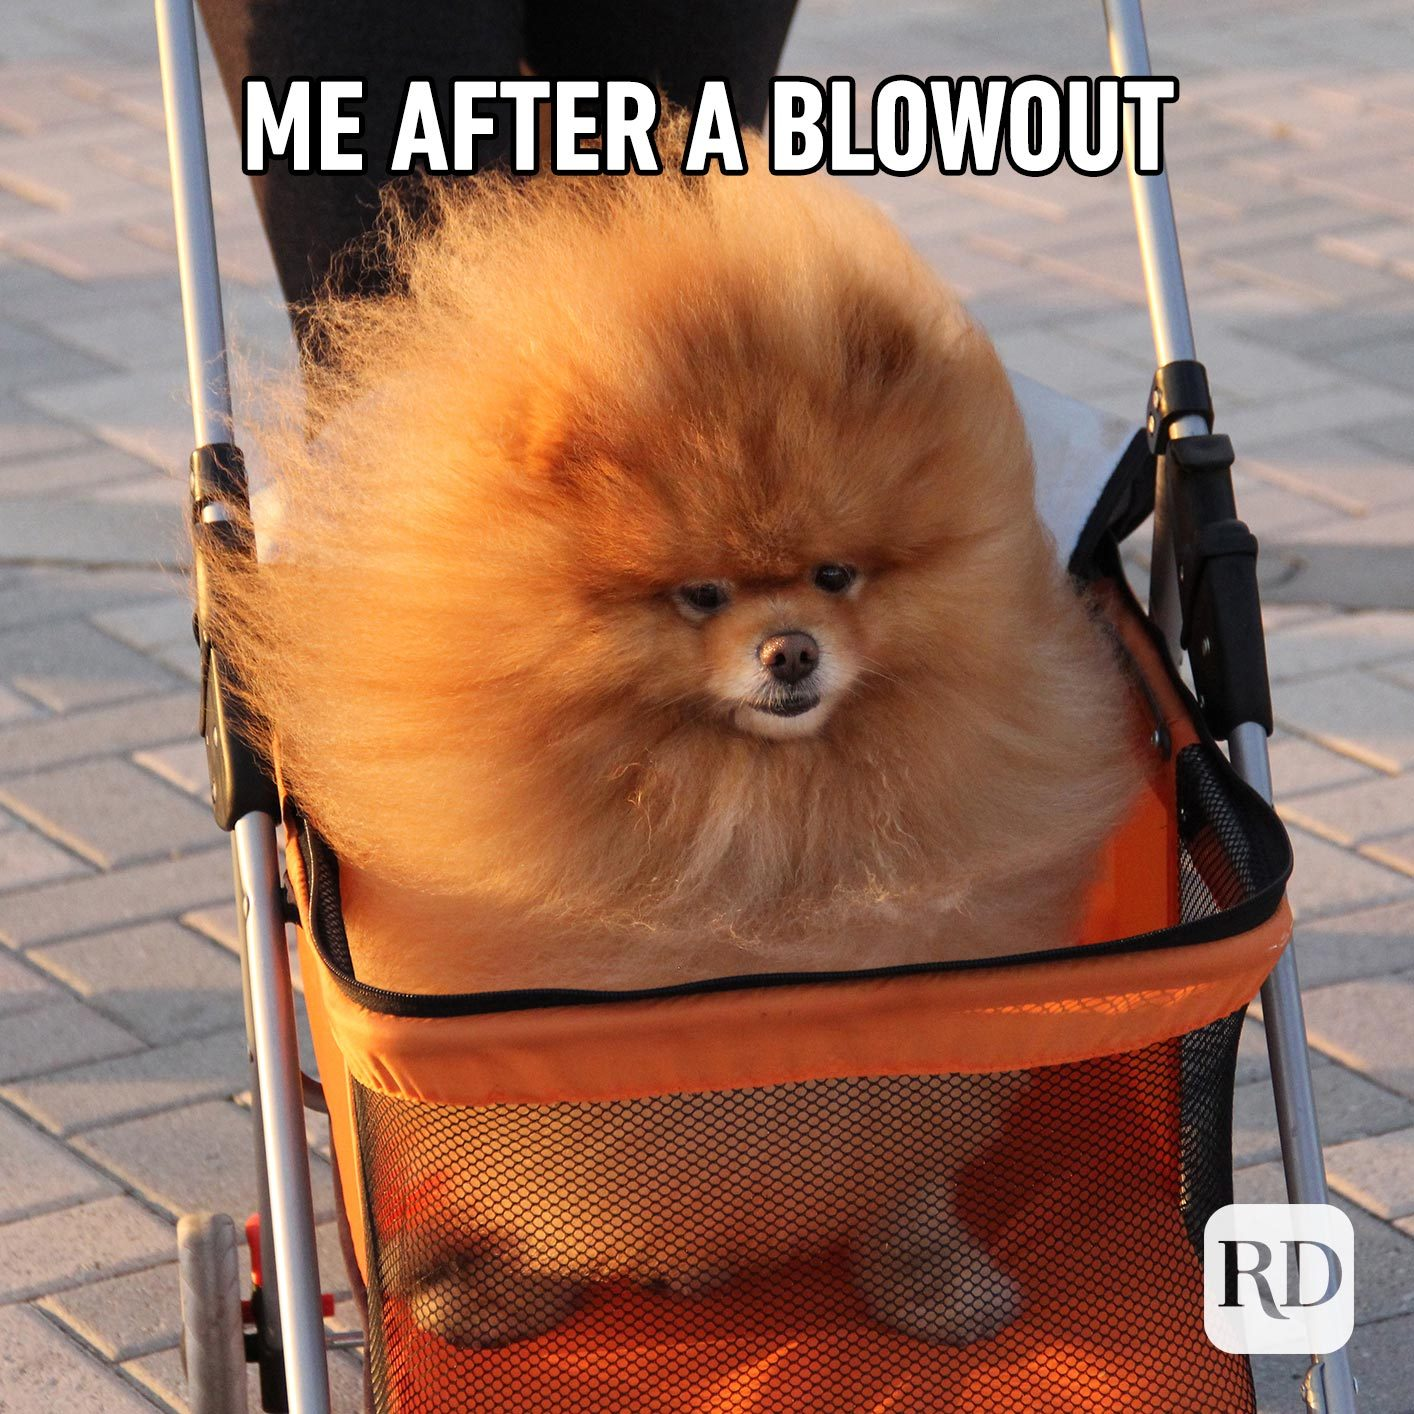 Dog with fluffy hair in stroller. Meme text: Me after a blowout